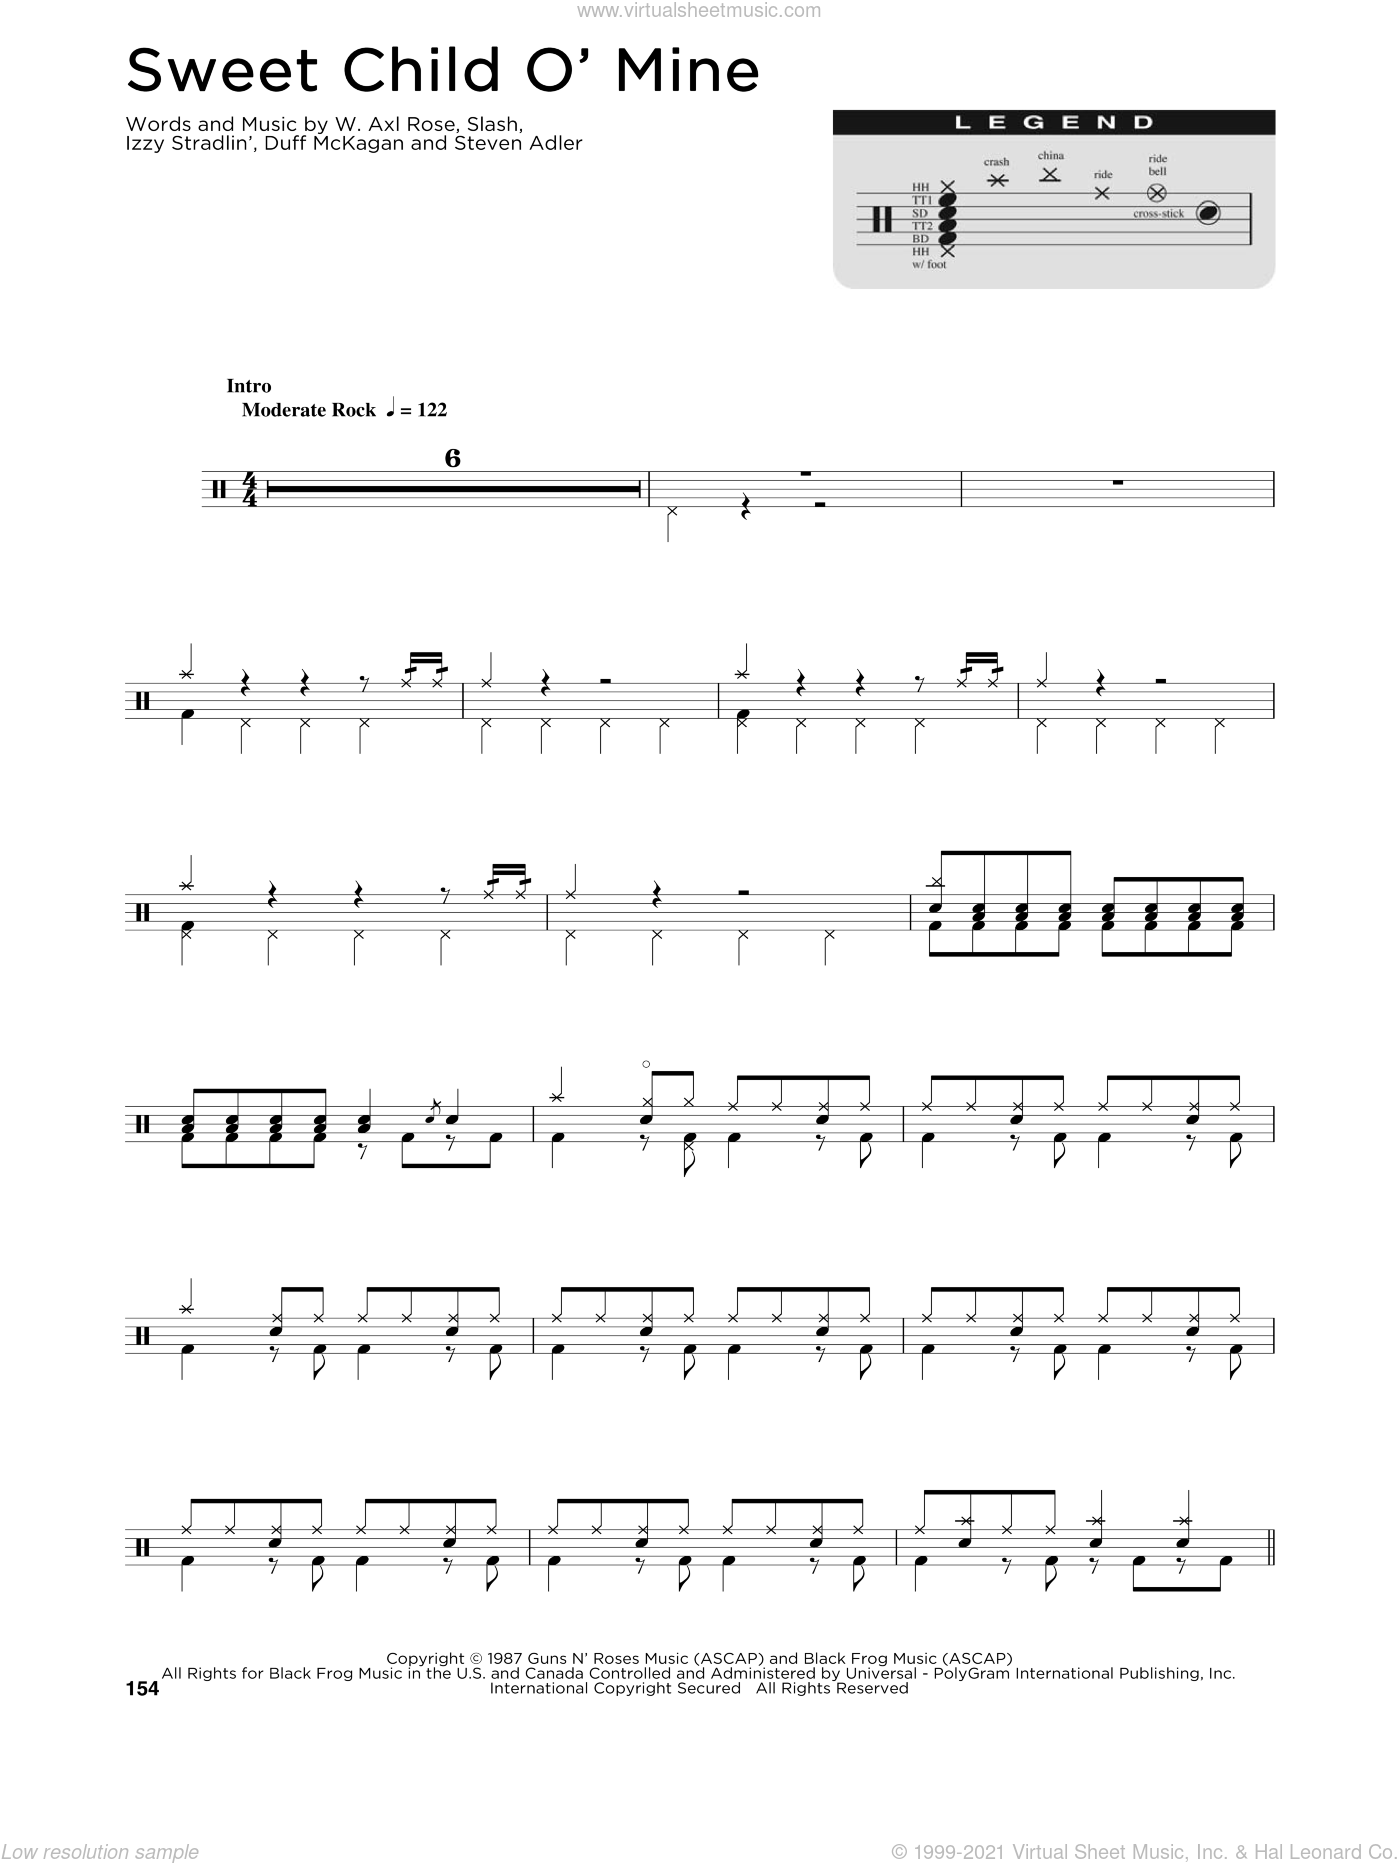 Sweet Child O' Mine sheet music for drums (percussions) by Guns N' Roses, Axl Rose, Duff McKagan, Slash and Steven Adler, intermediate skill level